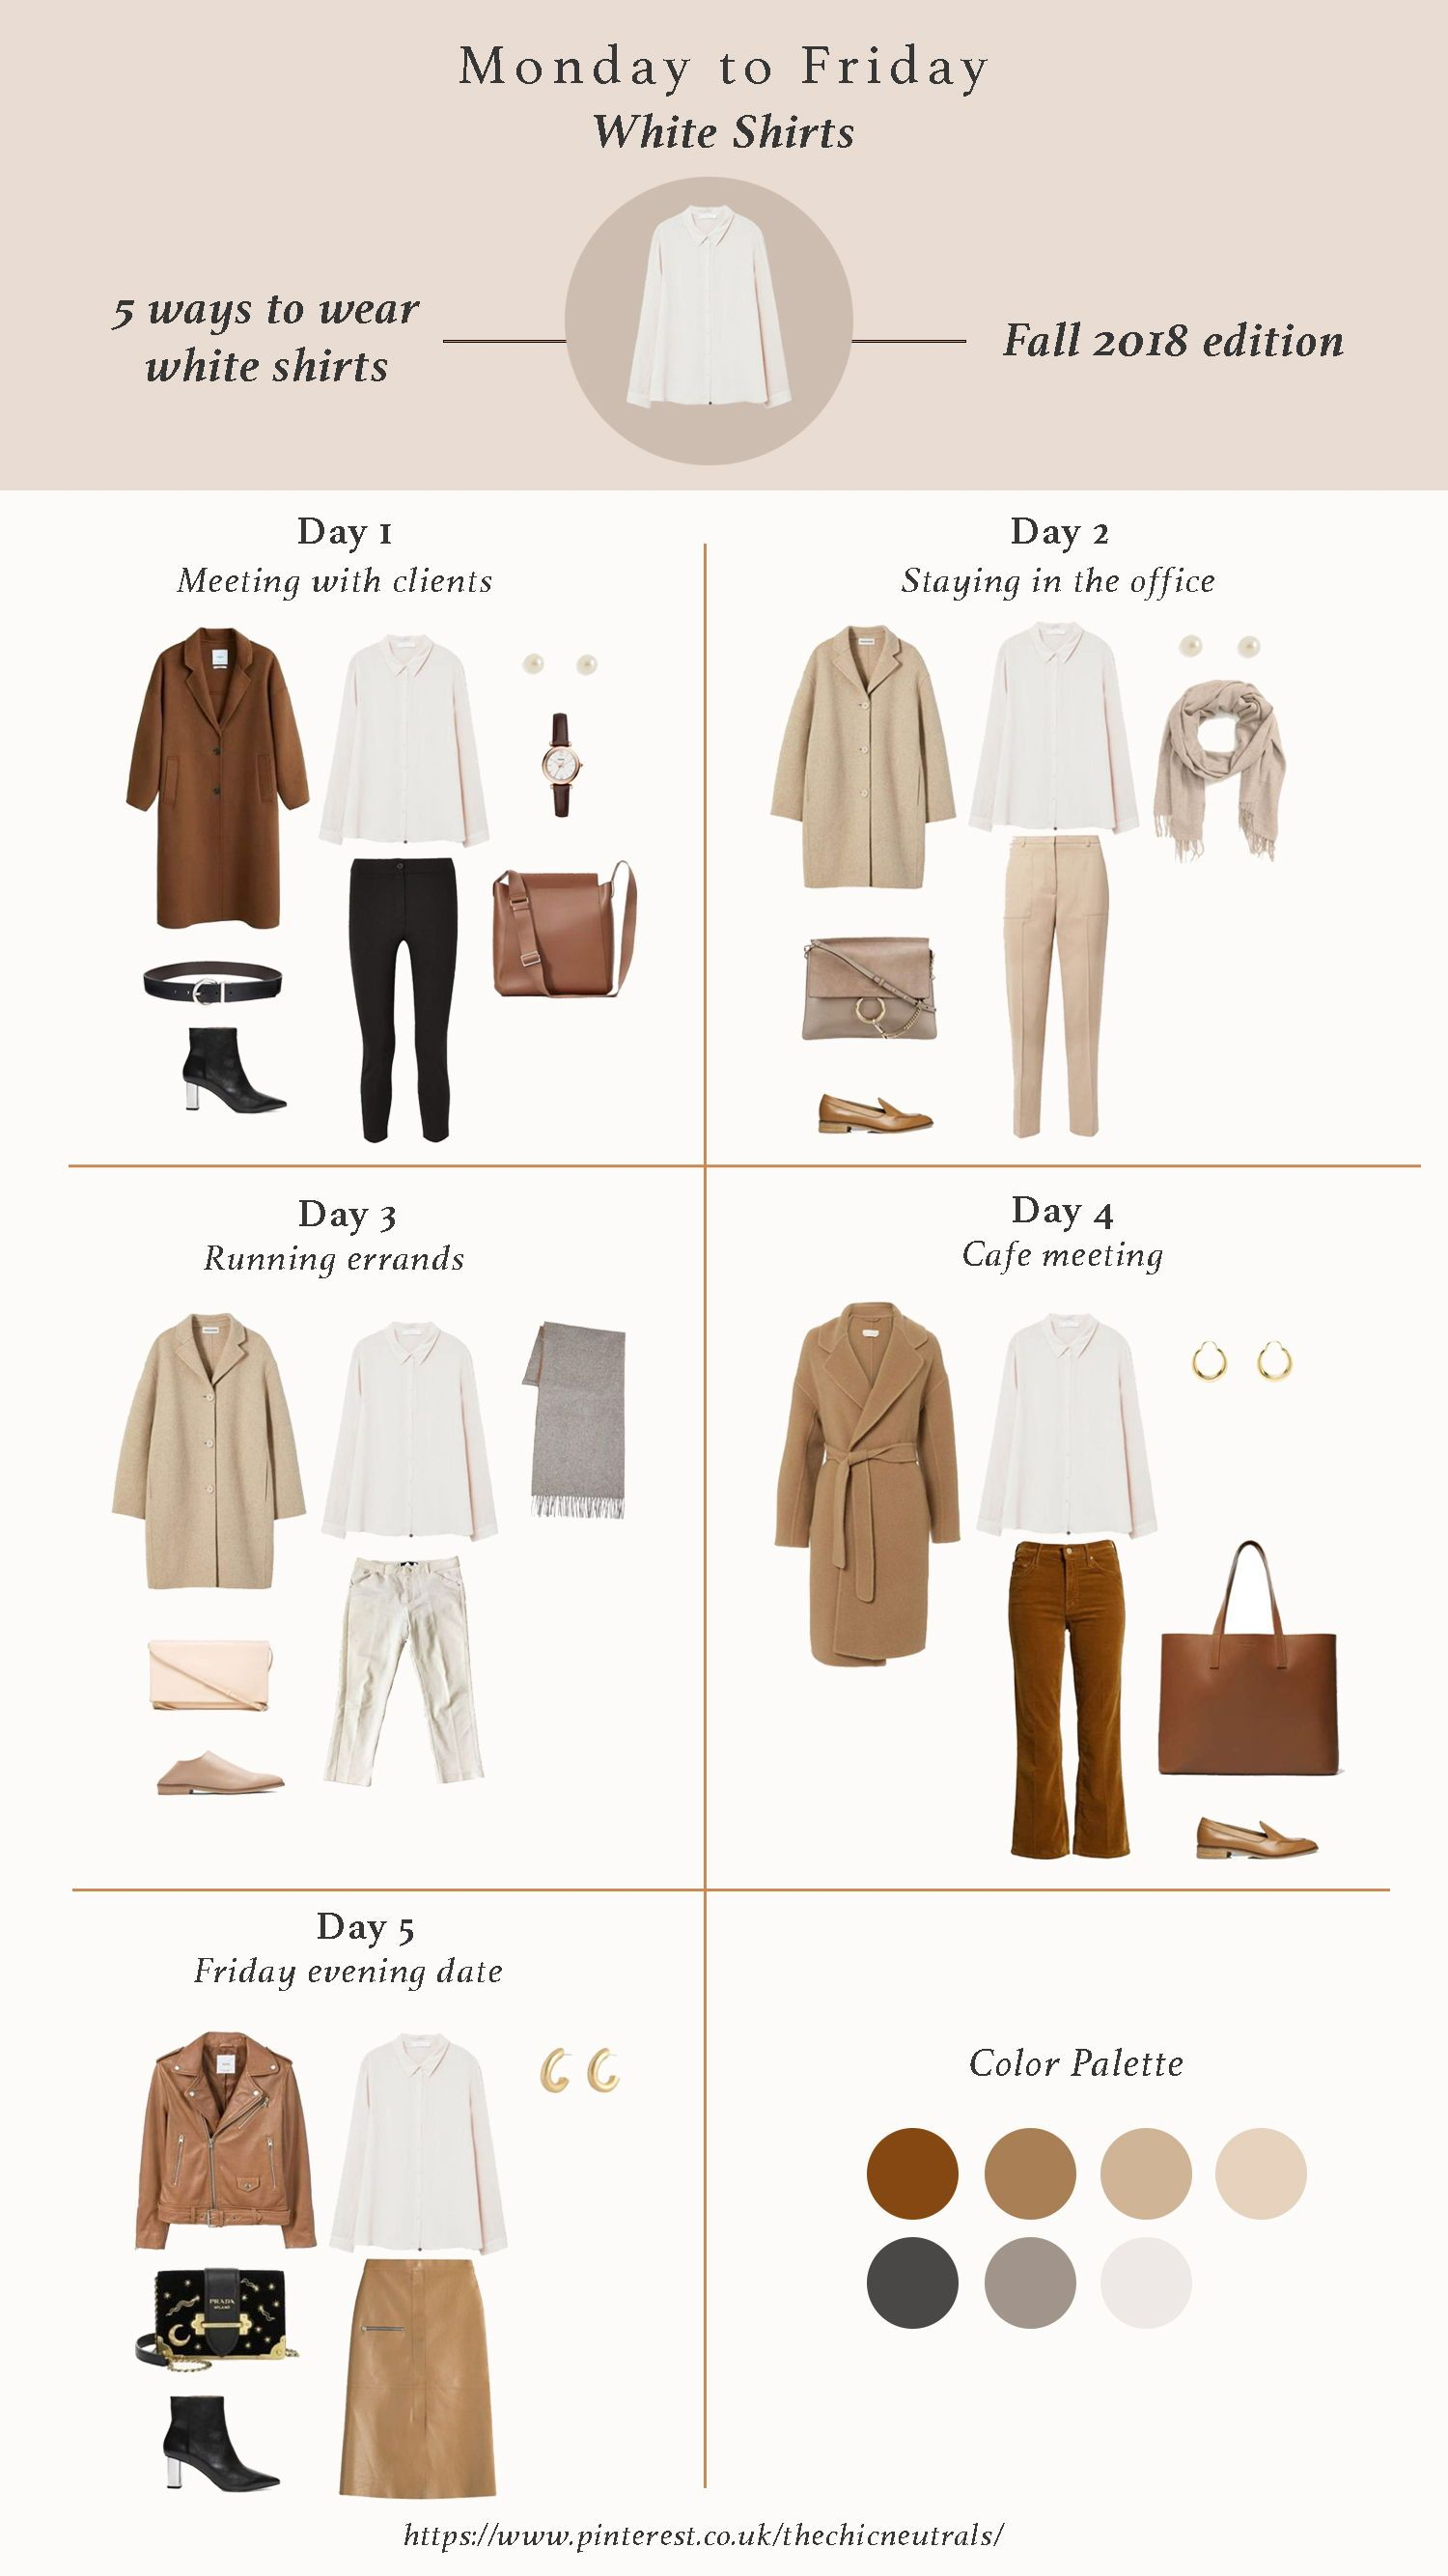 Styling white shirts has never been any easier in this season. Here are 5 ways to style white shirts for fall 2018. Fall Outfits | Capsule Wardrobe | 2018 Fashion Trend Items | Neutral Tones | Nude tones | Minimalism Style #fall2019fashiontrends